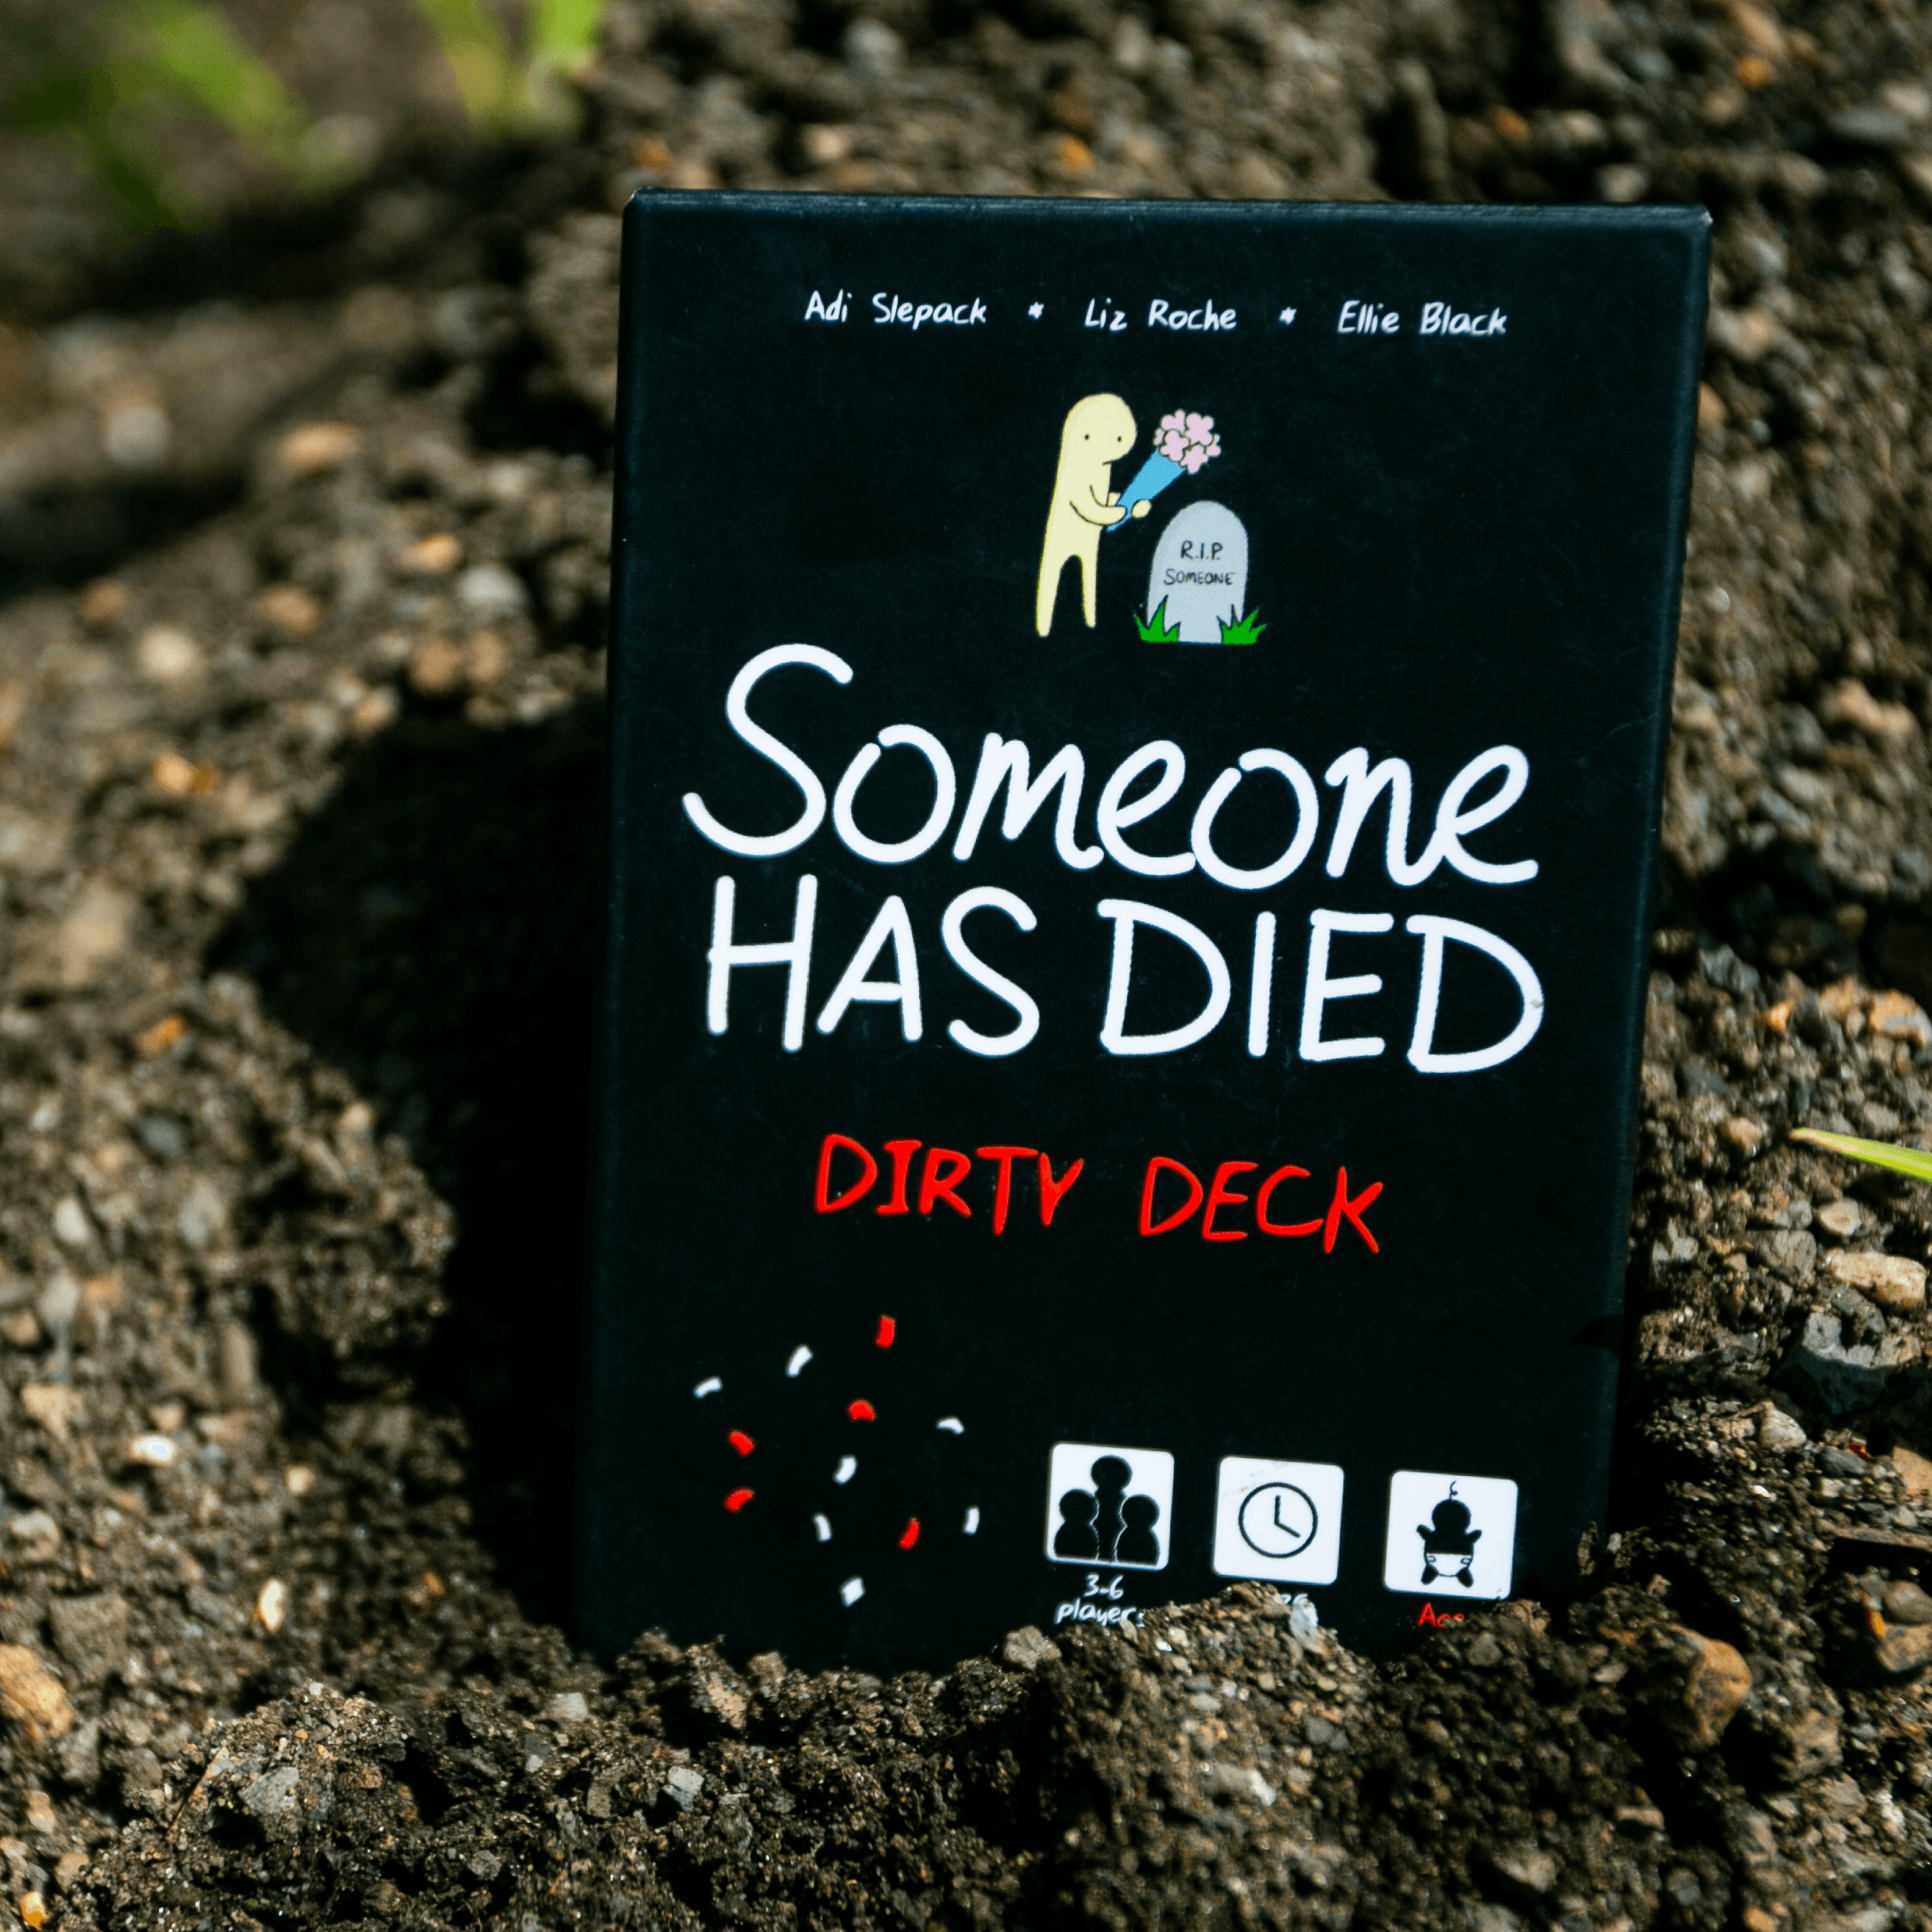 dirty deck edit crop 4web.png